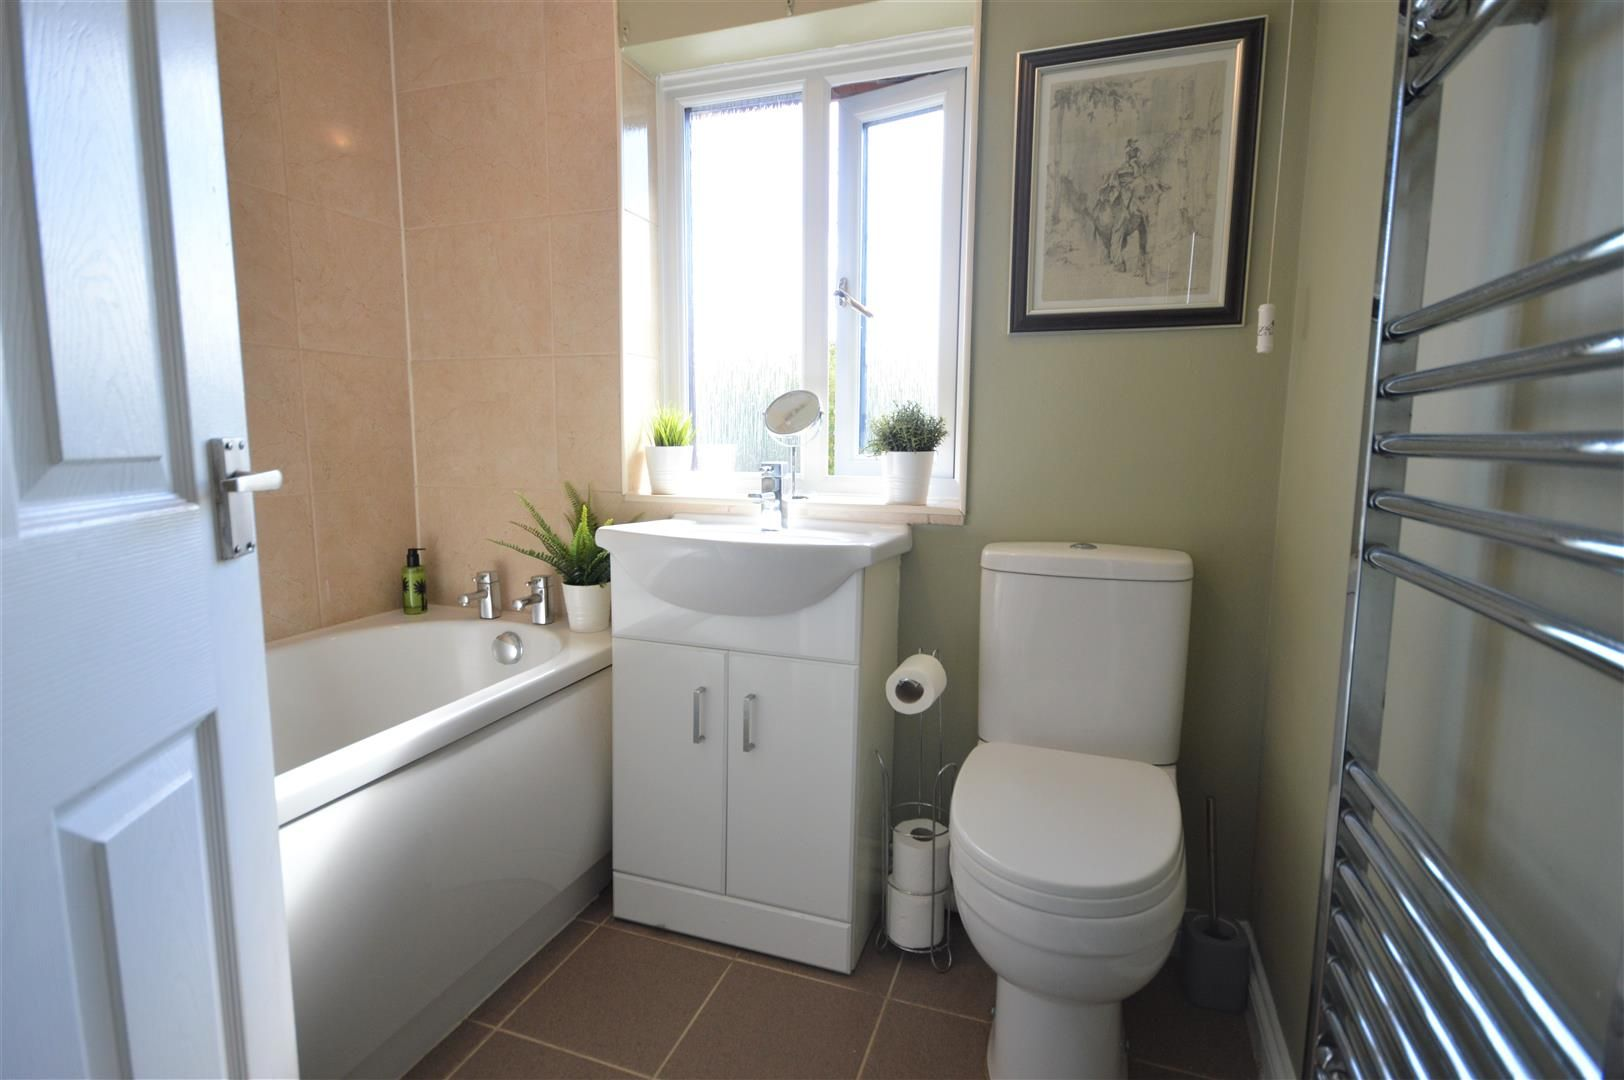 2 bed end-of-terrace for sale in Leominster  - Property Image 5